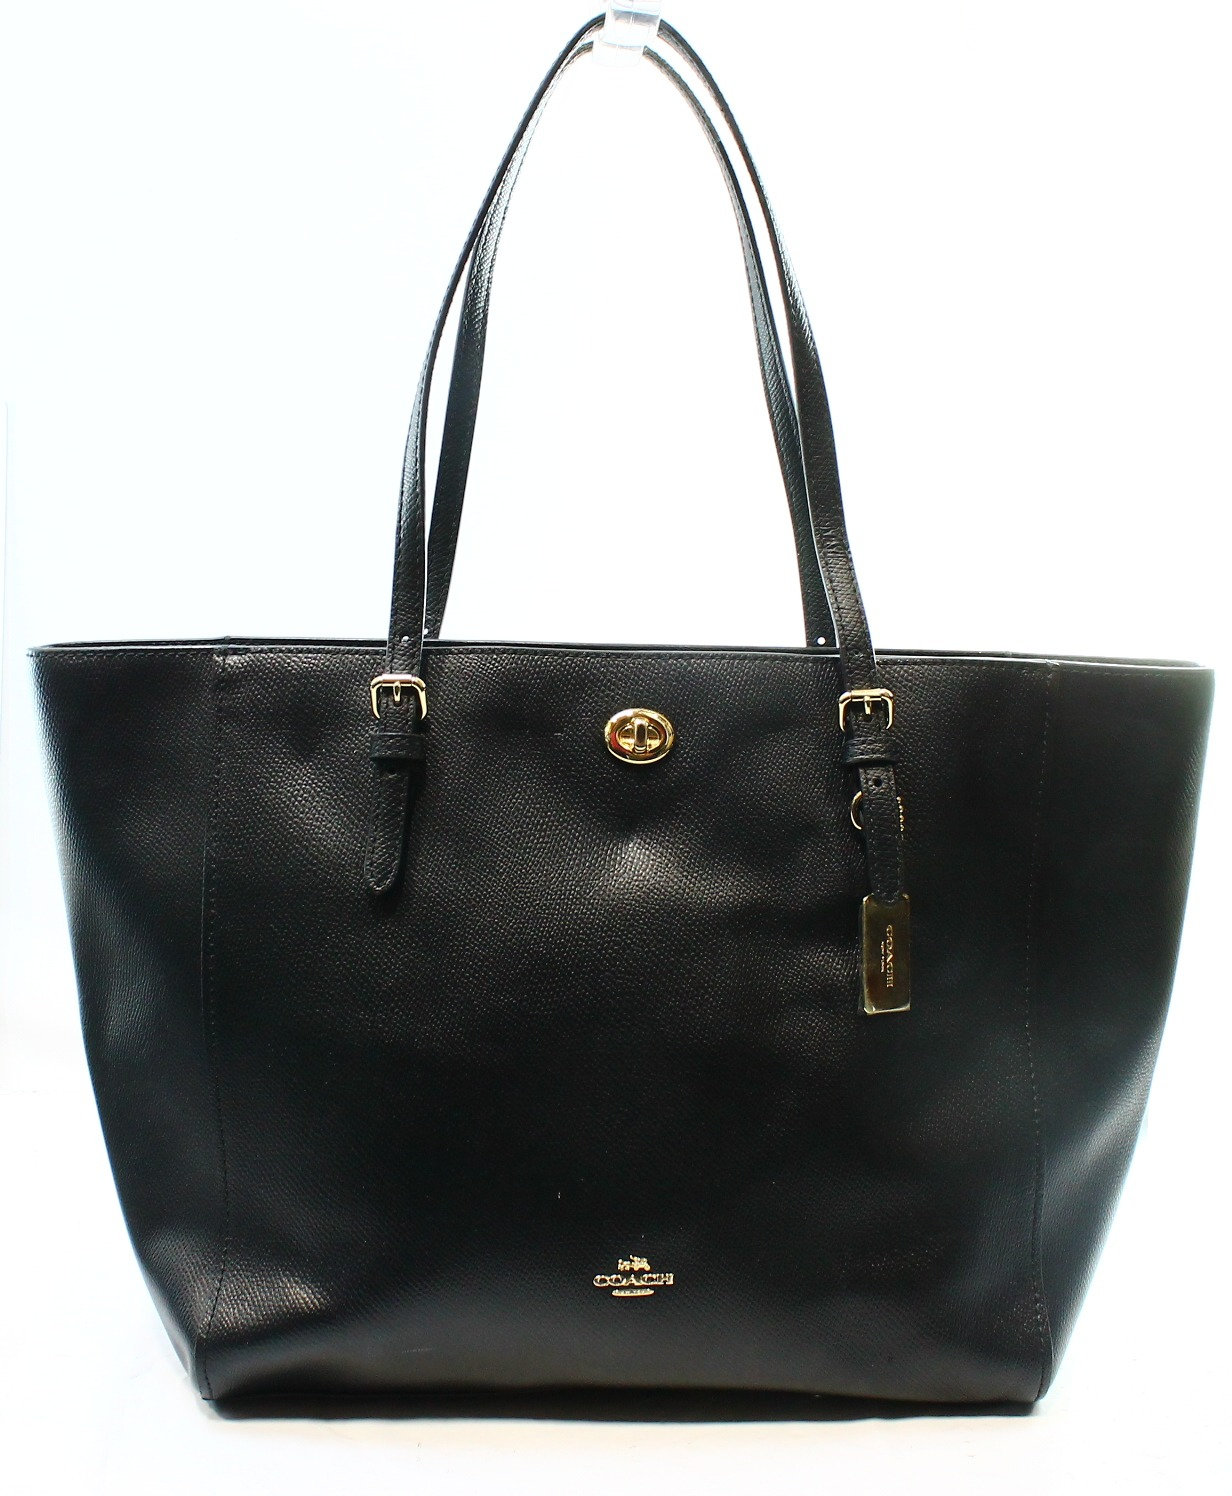 ... norway coach new black crossgrain leather turnlock zip top tote bag  purse 295 18822 64f4e 9d5a45784c1d3